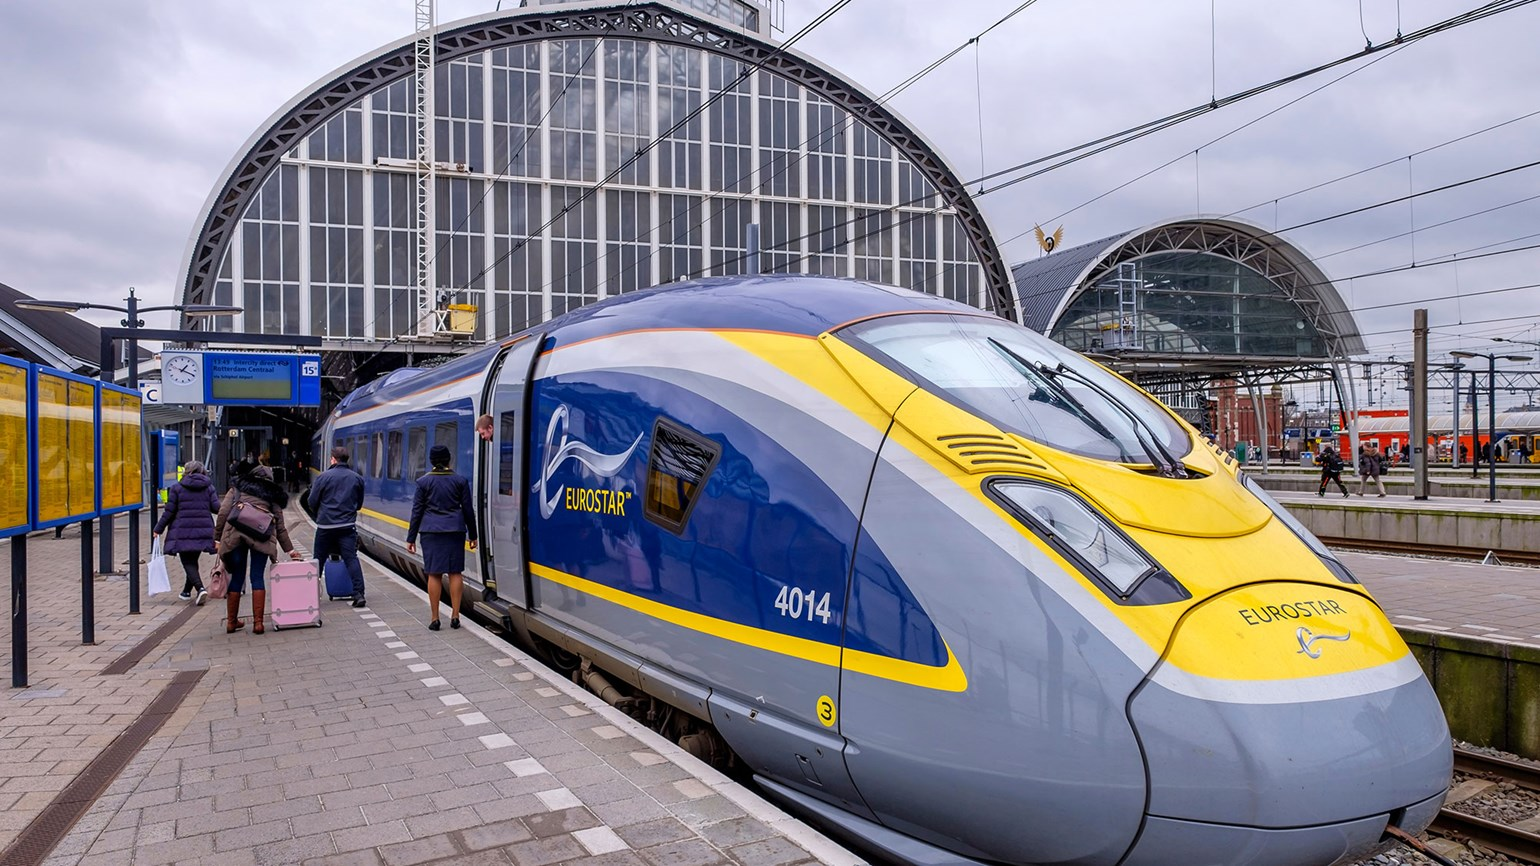 Report: Eurostar and Thalys to merge in 2021